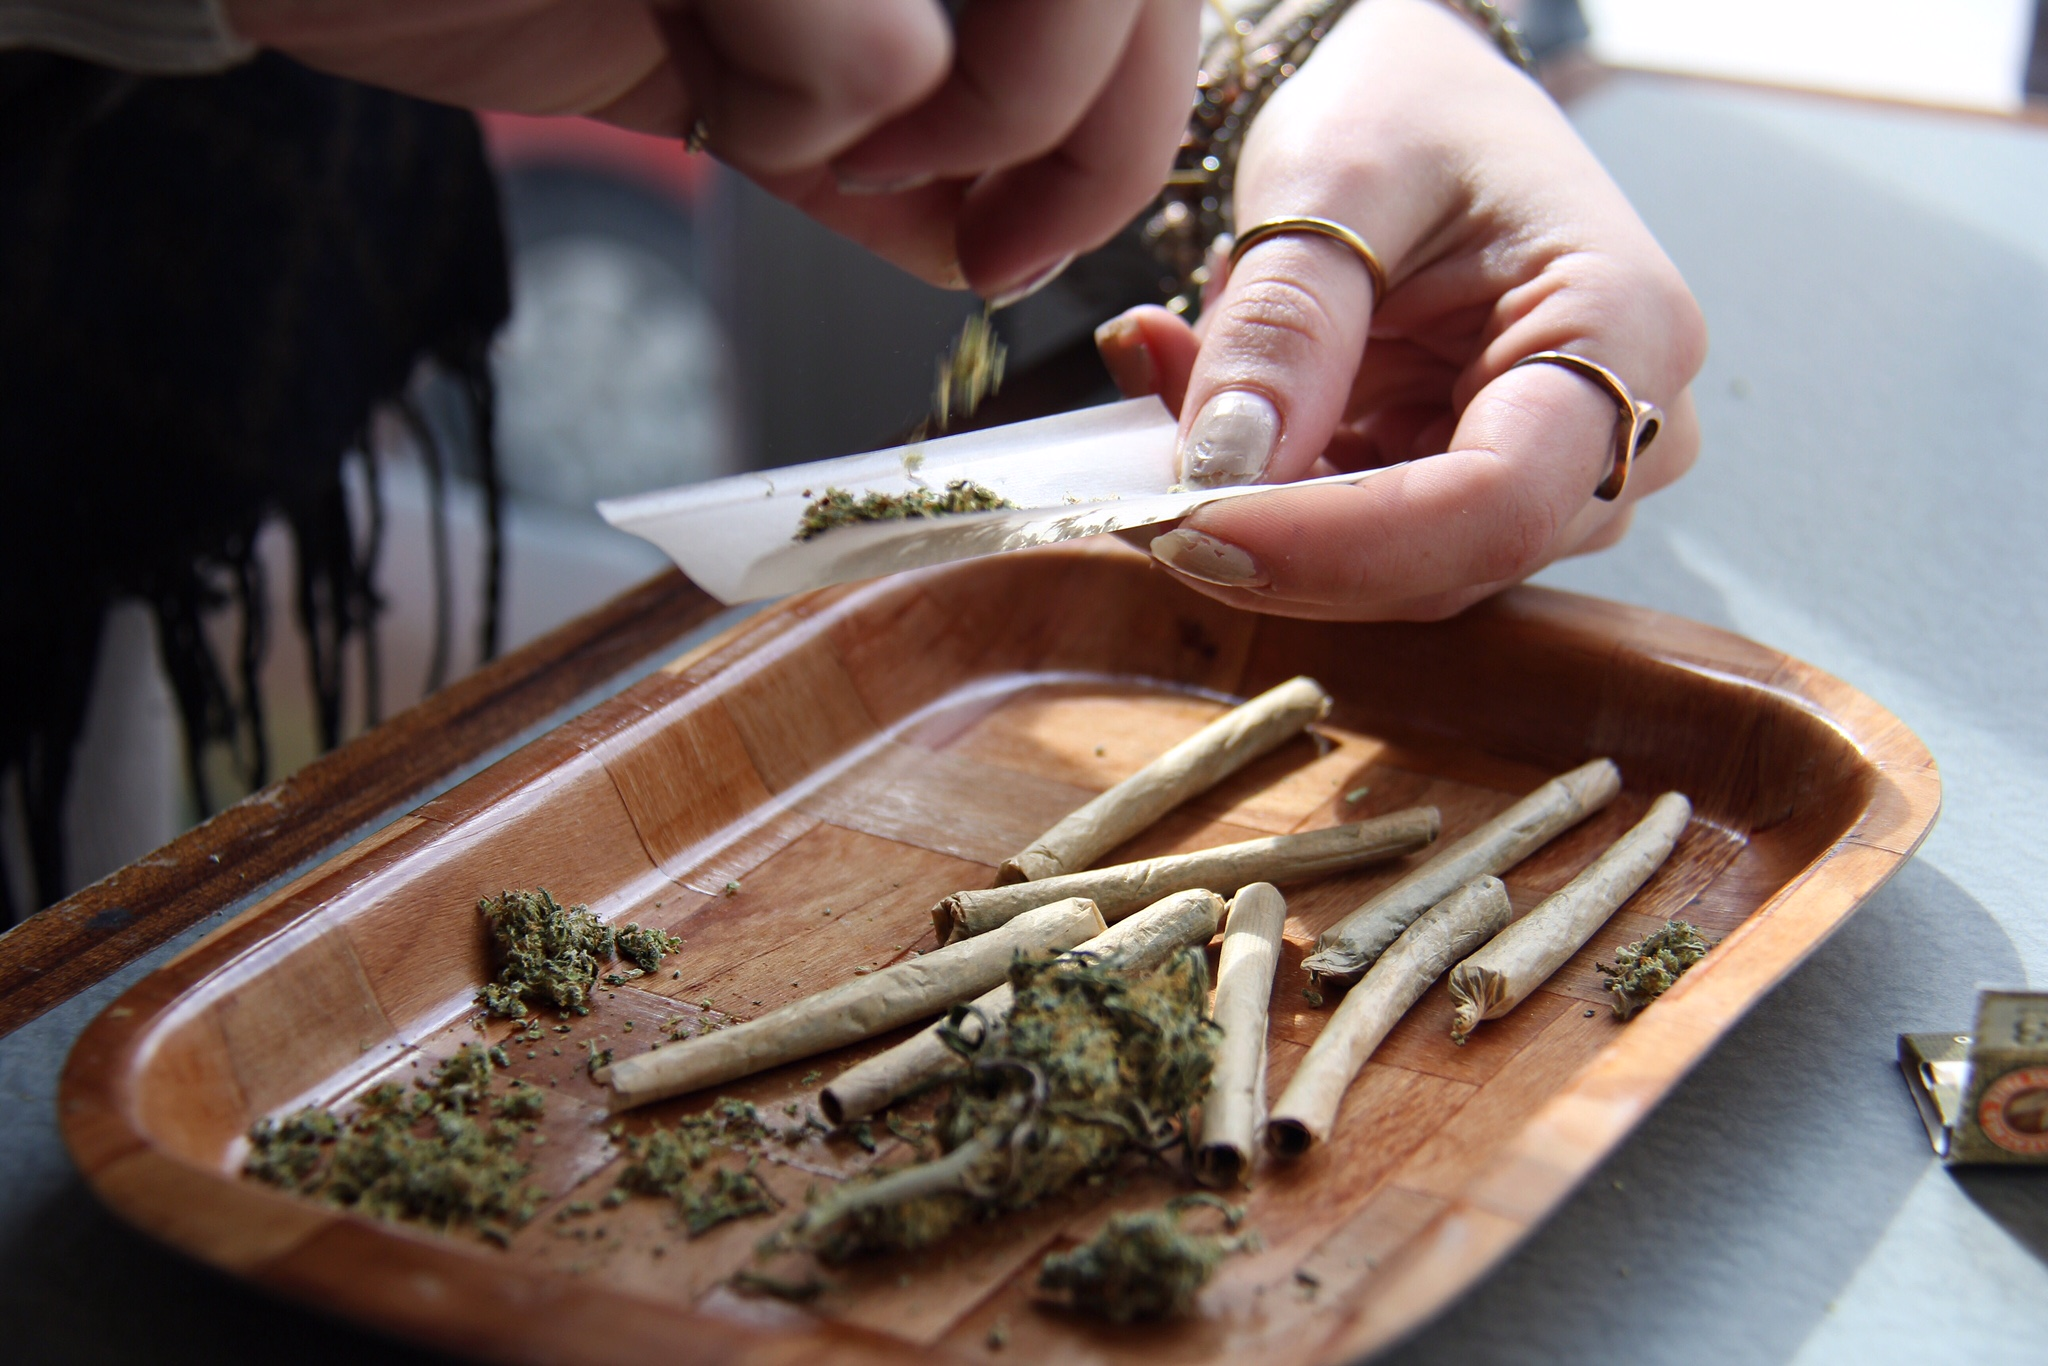 An employee at Cannabis Culture's Church Street location, prepares a joint on Mar. 8, 2017.